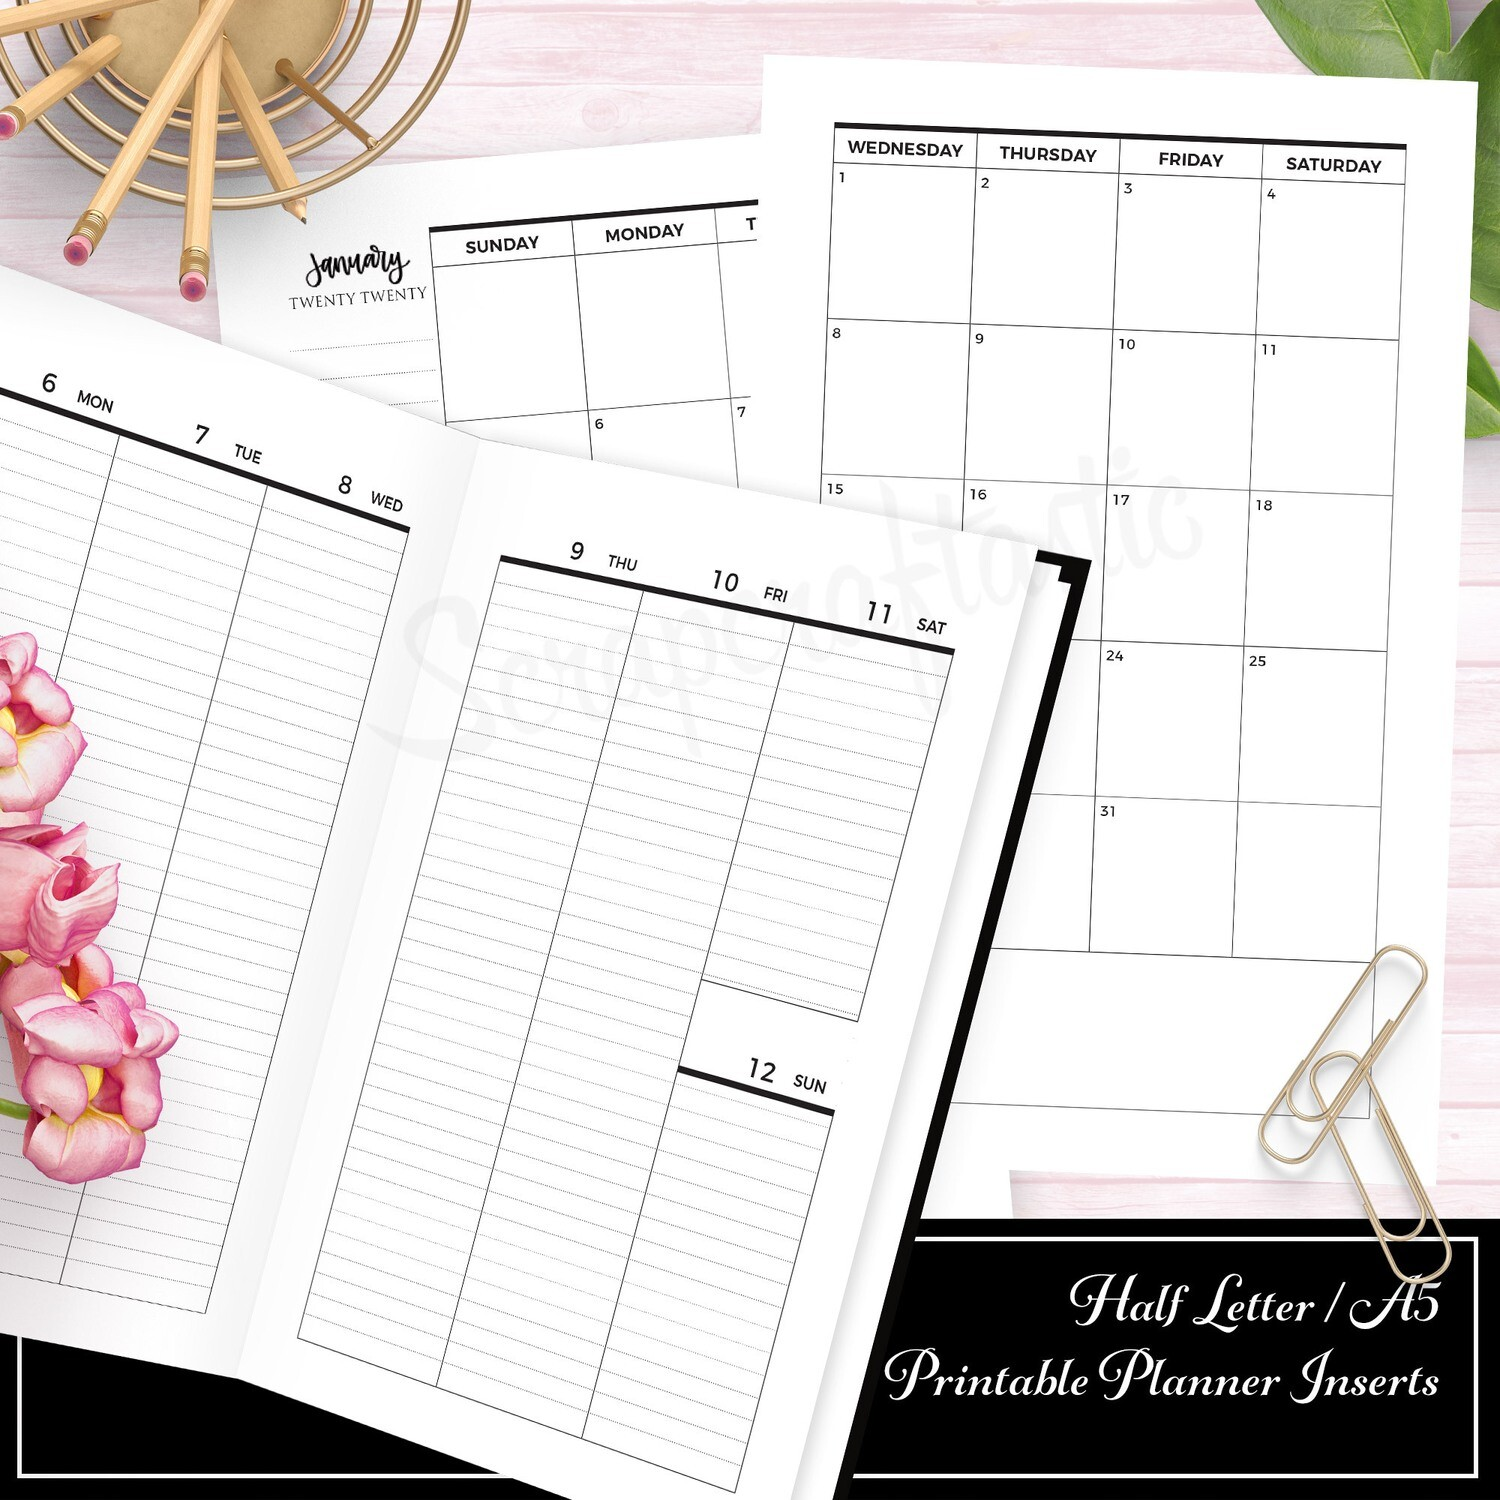 HALF LETTER A5 - January 2020 (WO2P) Dated Printable Planner Inserts